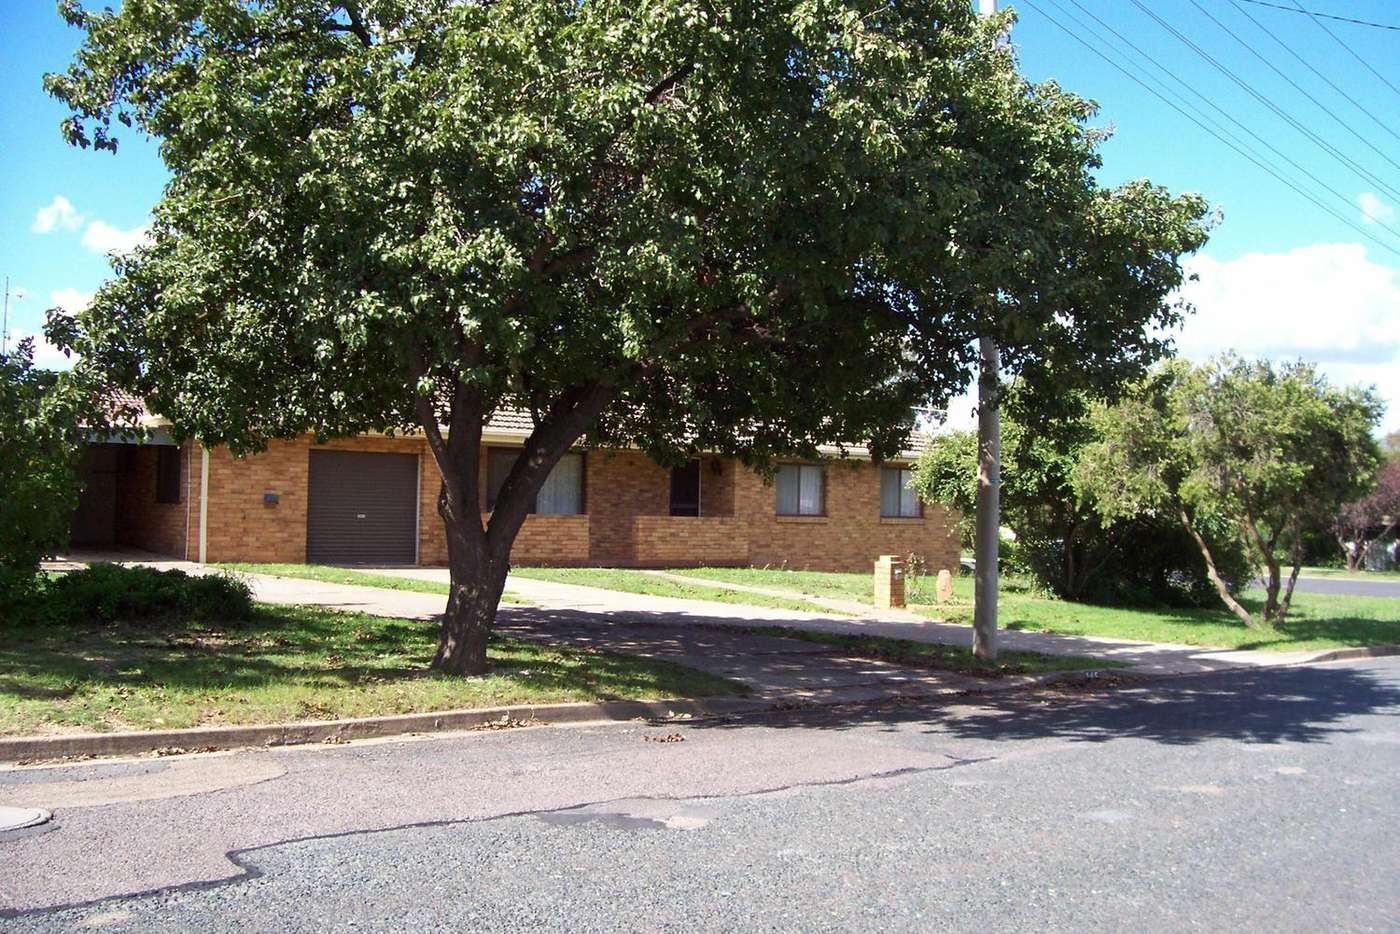 Main view of Homely house listing, 145 Mundy Street, Goulburn NSW 2580